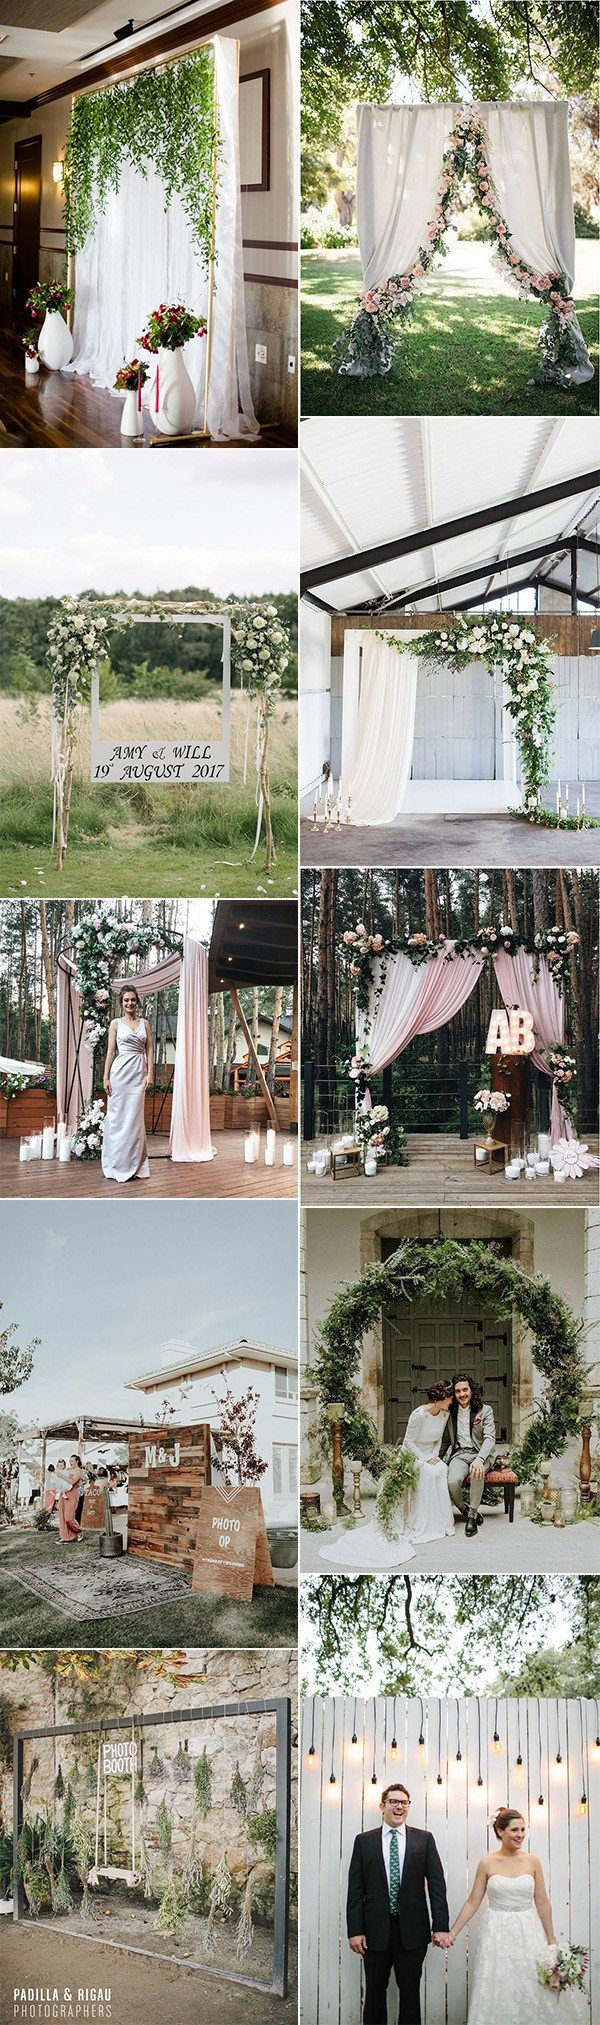 Photobooth Ideas Wedding Wedding Photo Booth Ideas Archives Oh Best Day Ever